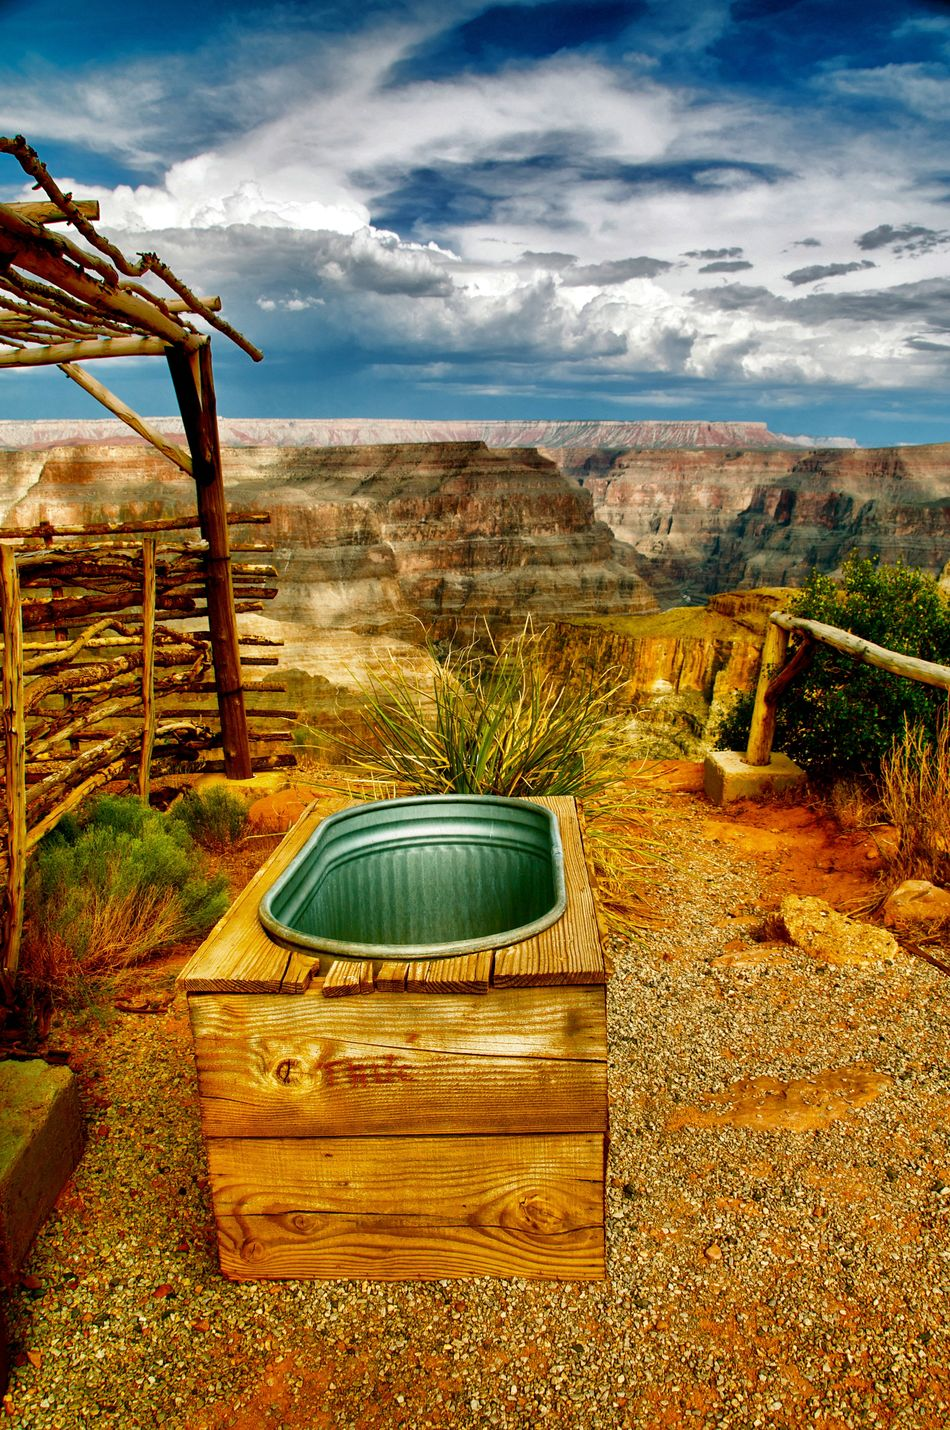 Sky Cloud - Sky Sea Scenics Water Vacations No People Outdoors Swimming Pool Beauty In Nature Nature Beach Day Travel Photography Travel Destinations Iconic Landmark Grandcanyonwest Grandcanyon